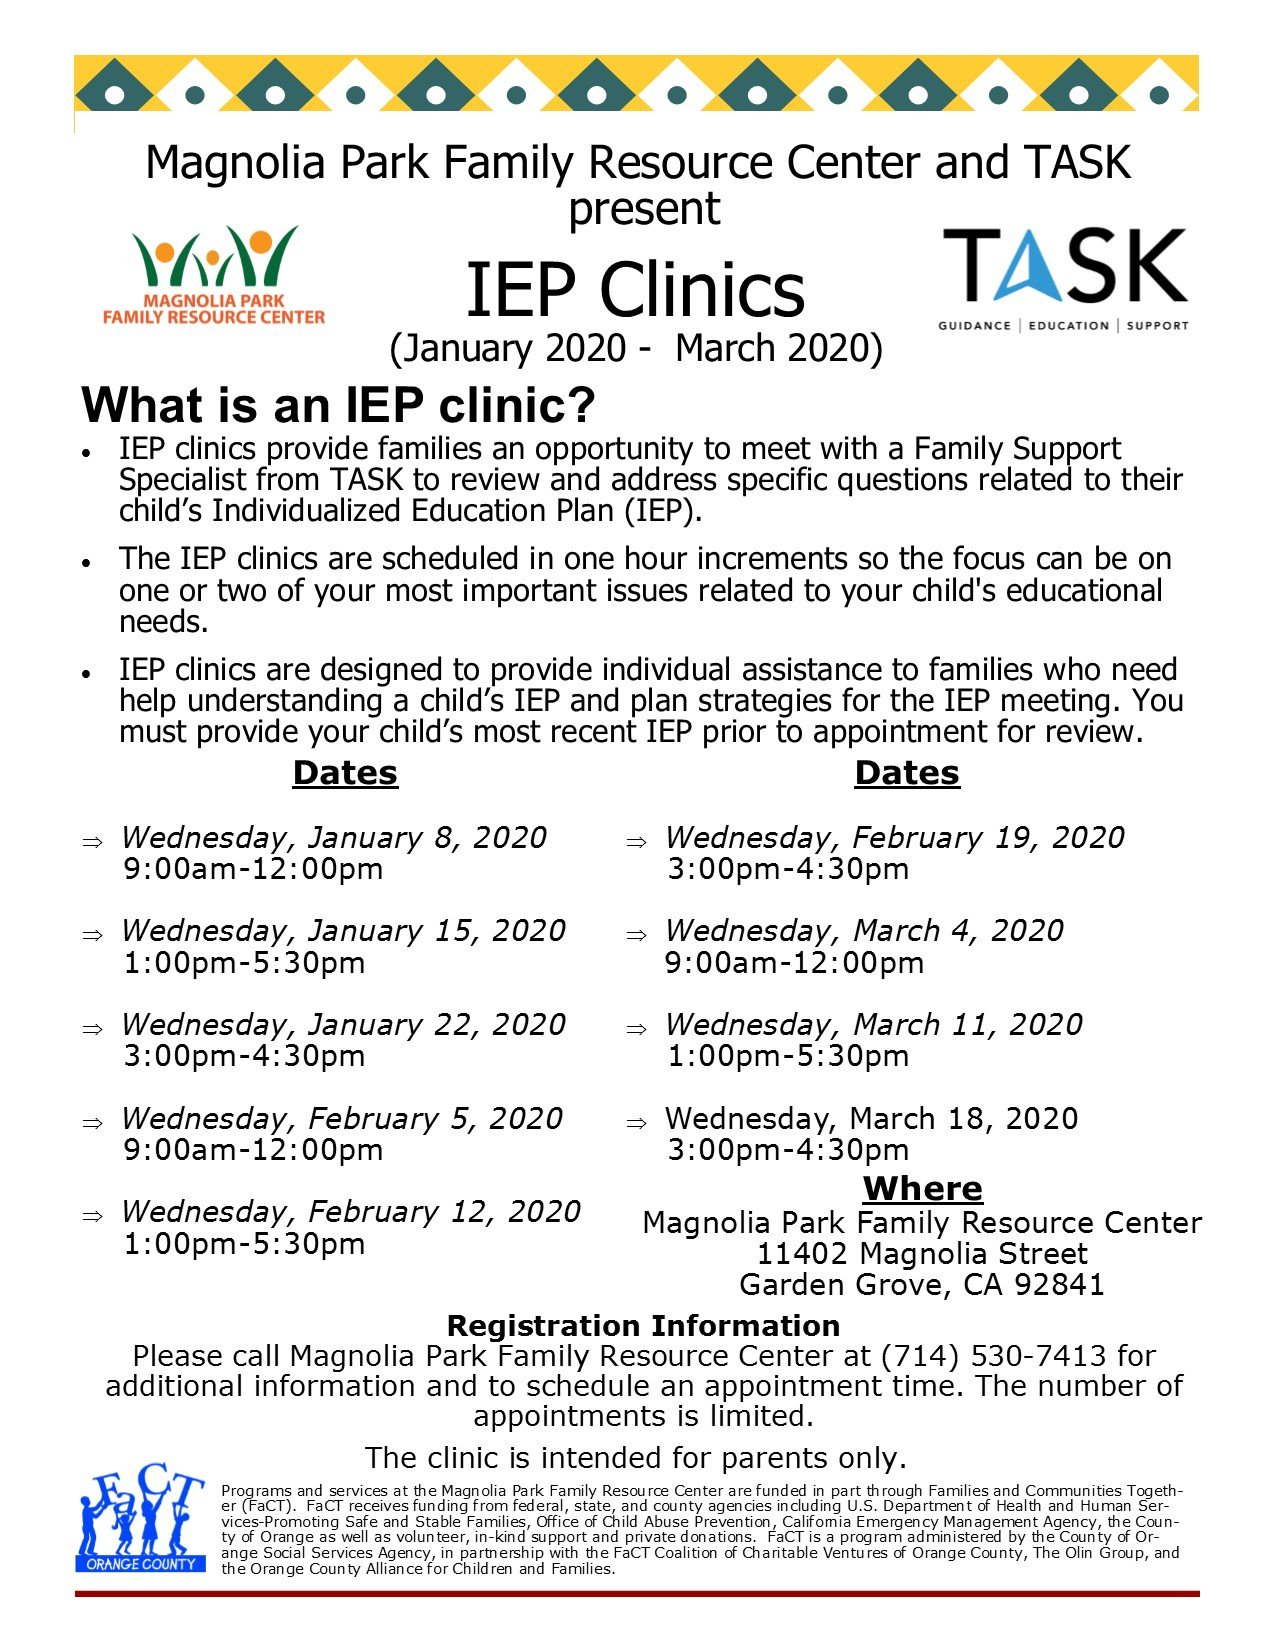 Individualized Education Plan Clinics